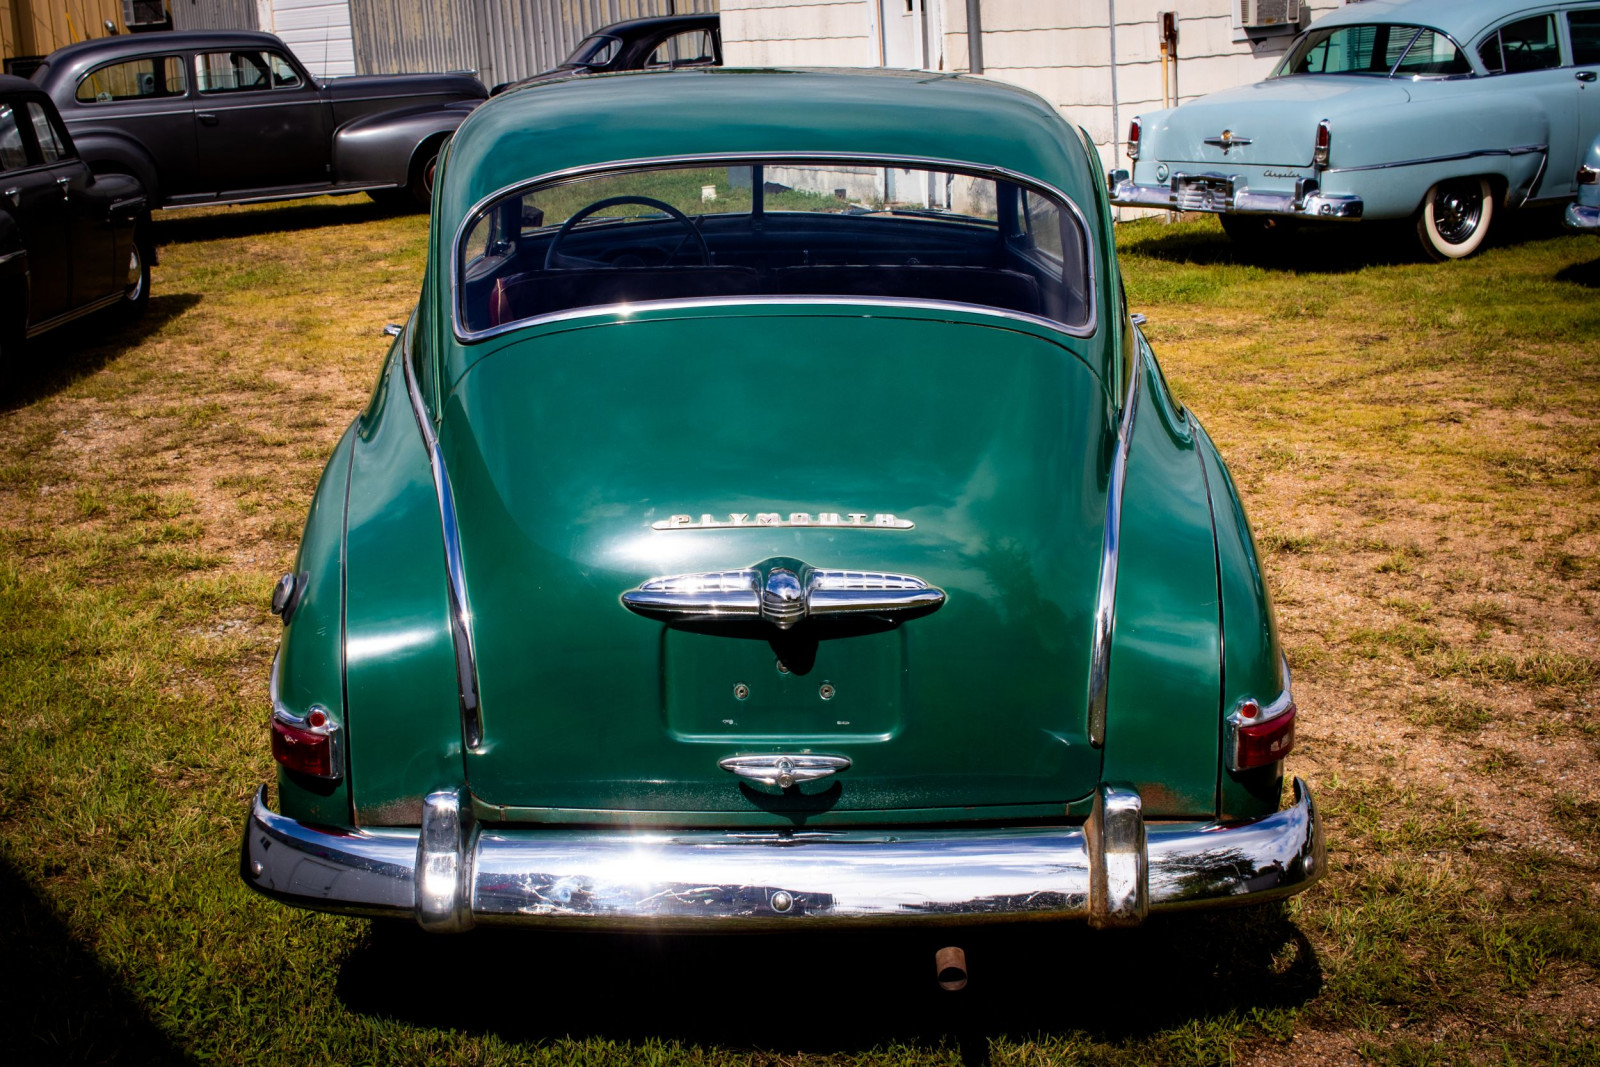 1951 Plymouth Concord P22 2dr Sedan - Image 6